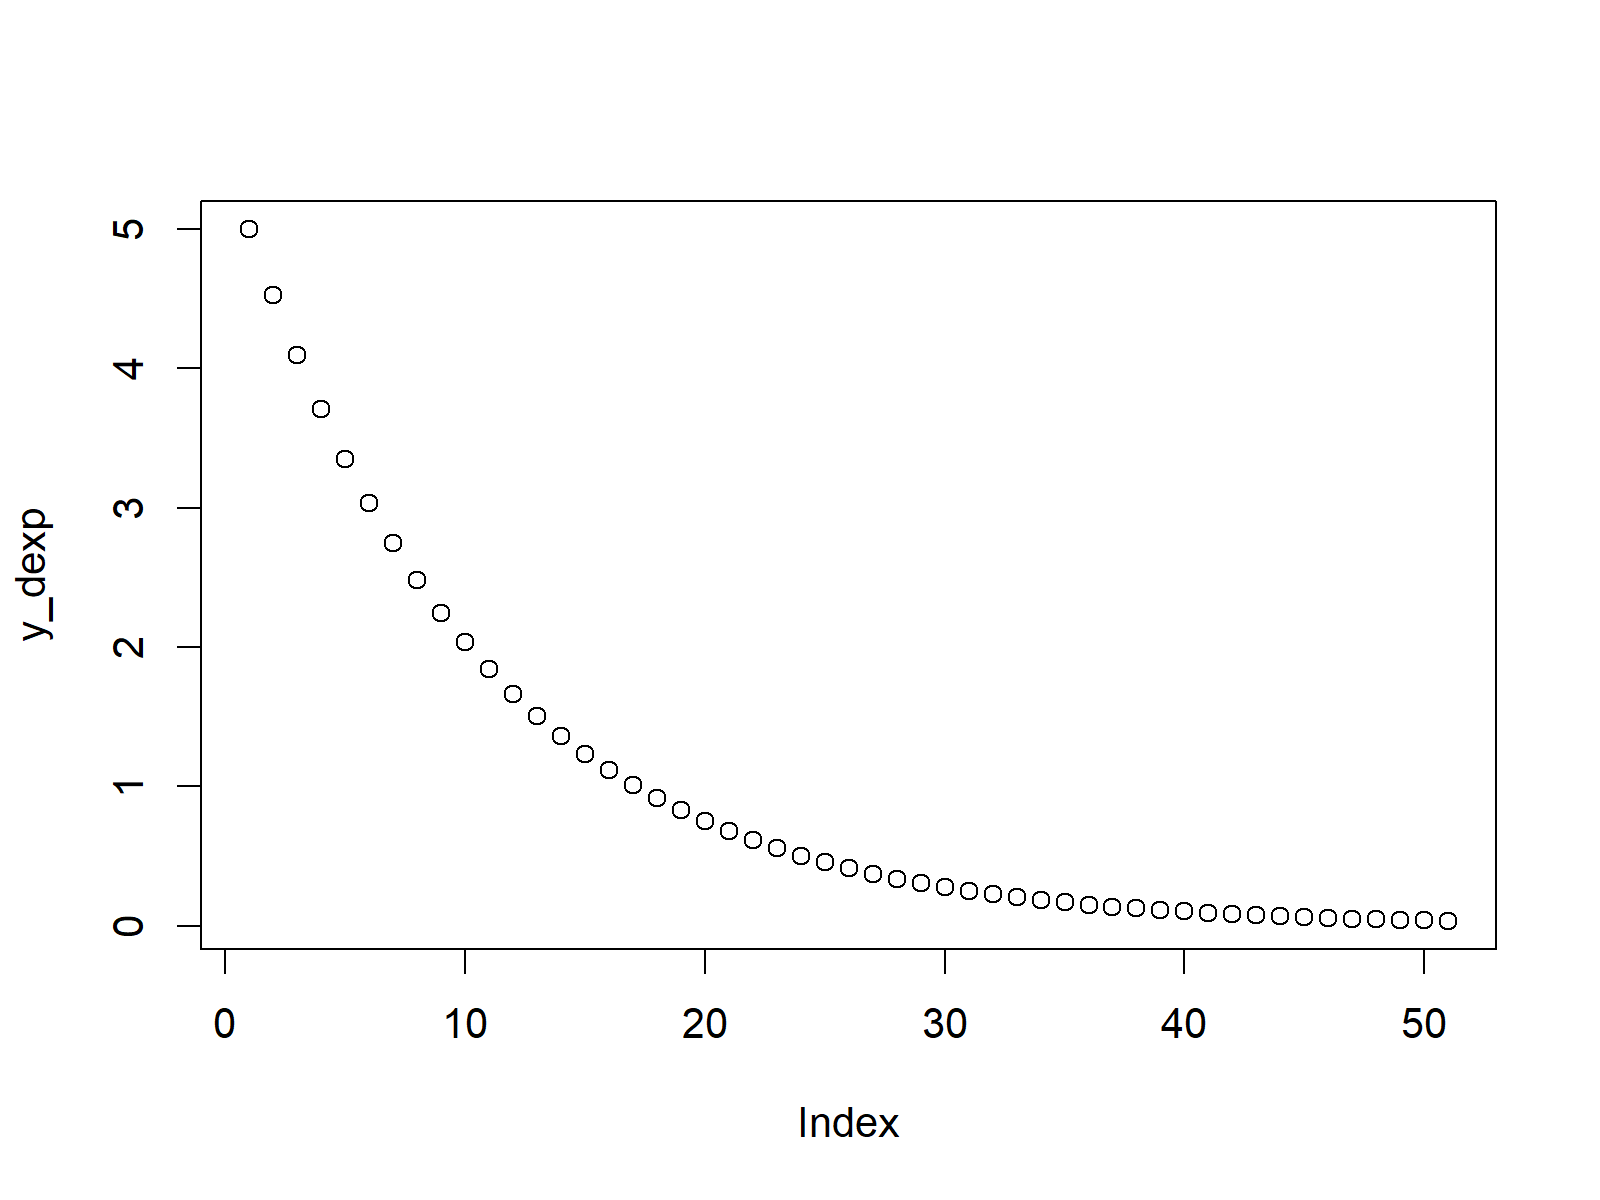 exponential density plot in r